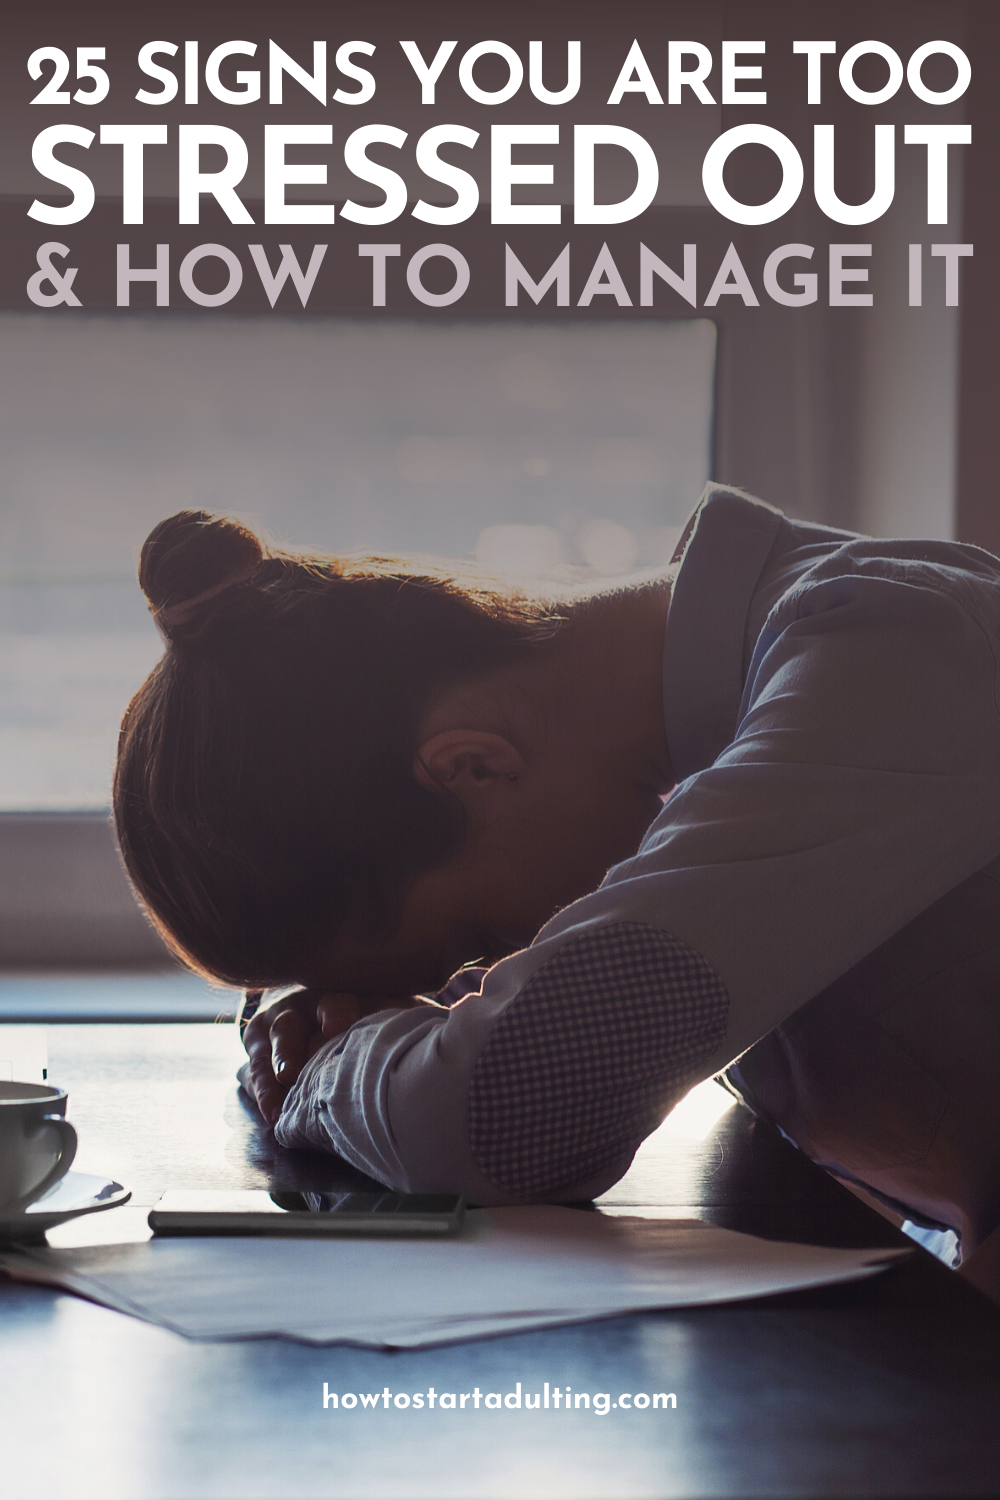 25 Signs You Are Way Too Stressed Out (And How To Manage It) #stress #stressedout #stressmanagement #selfcare